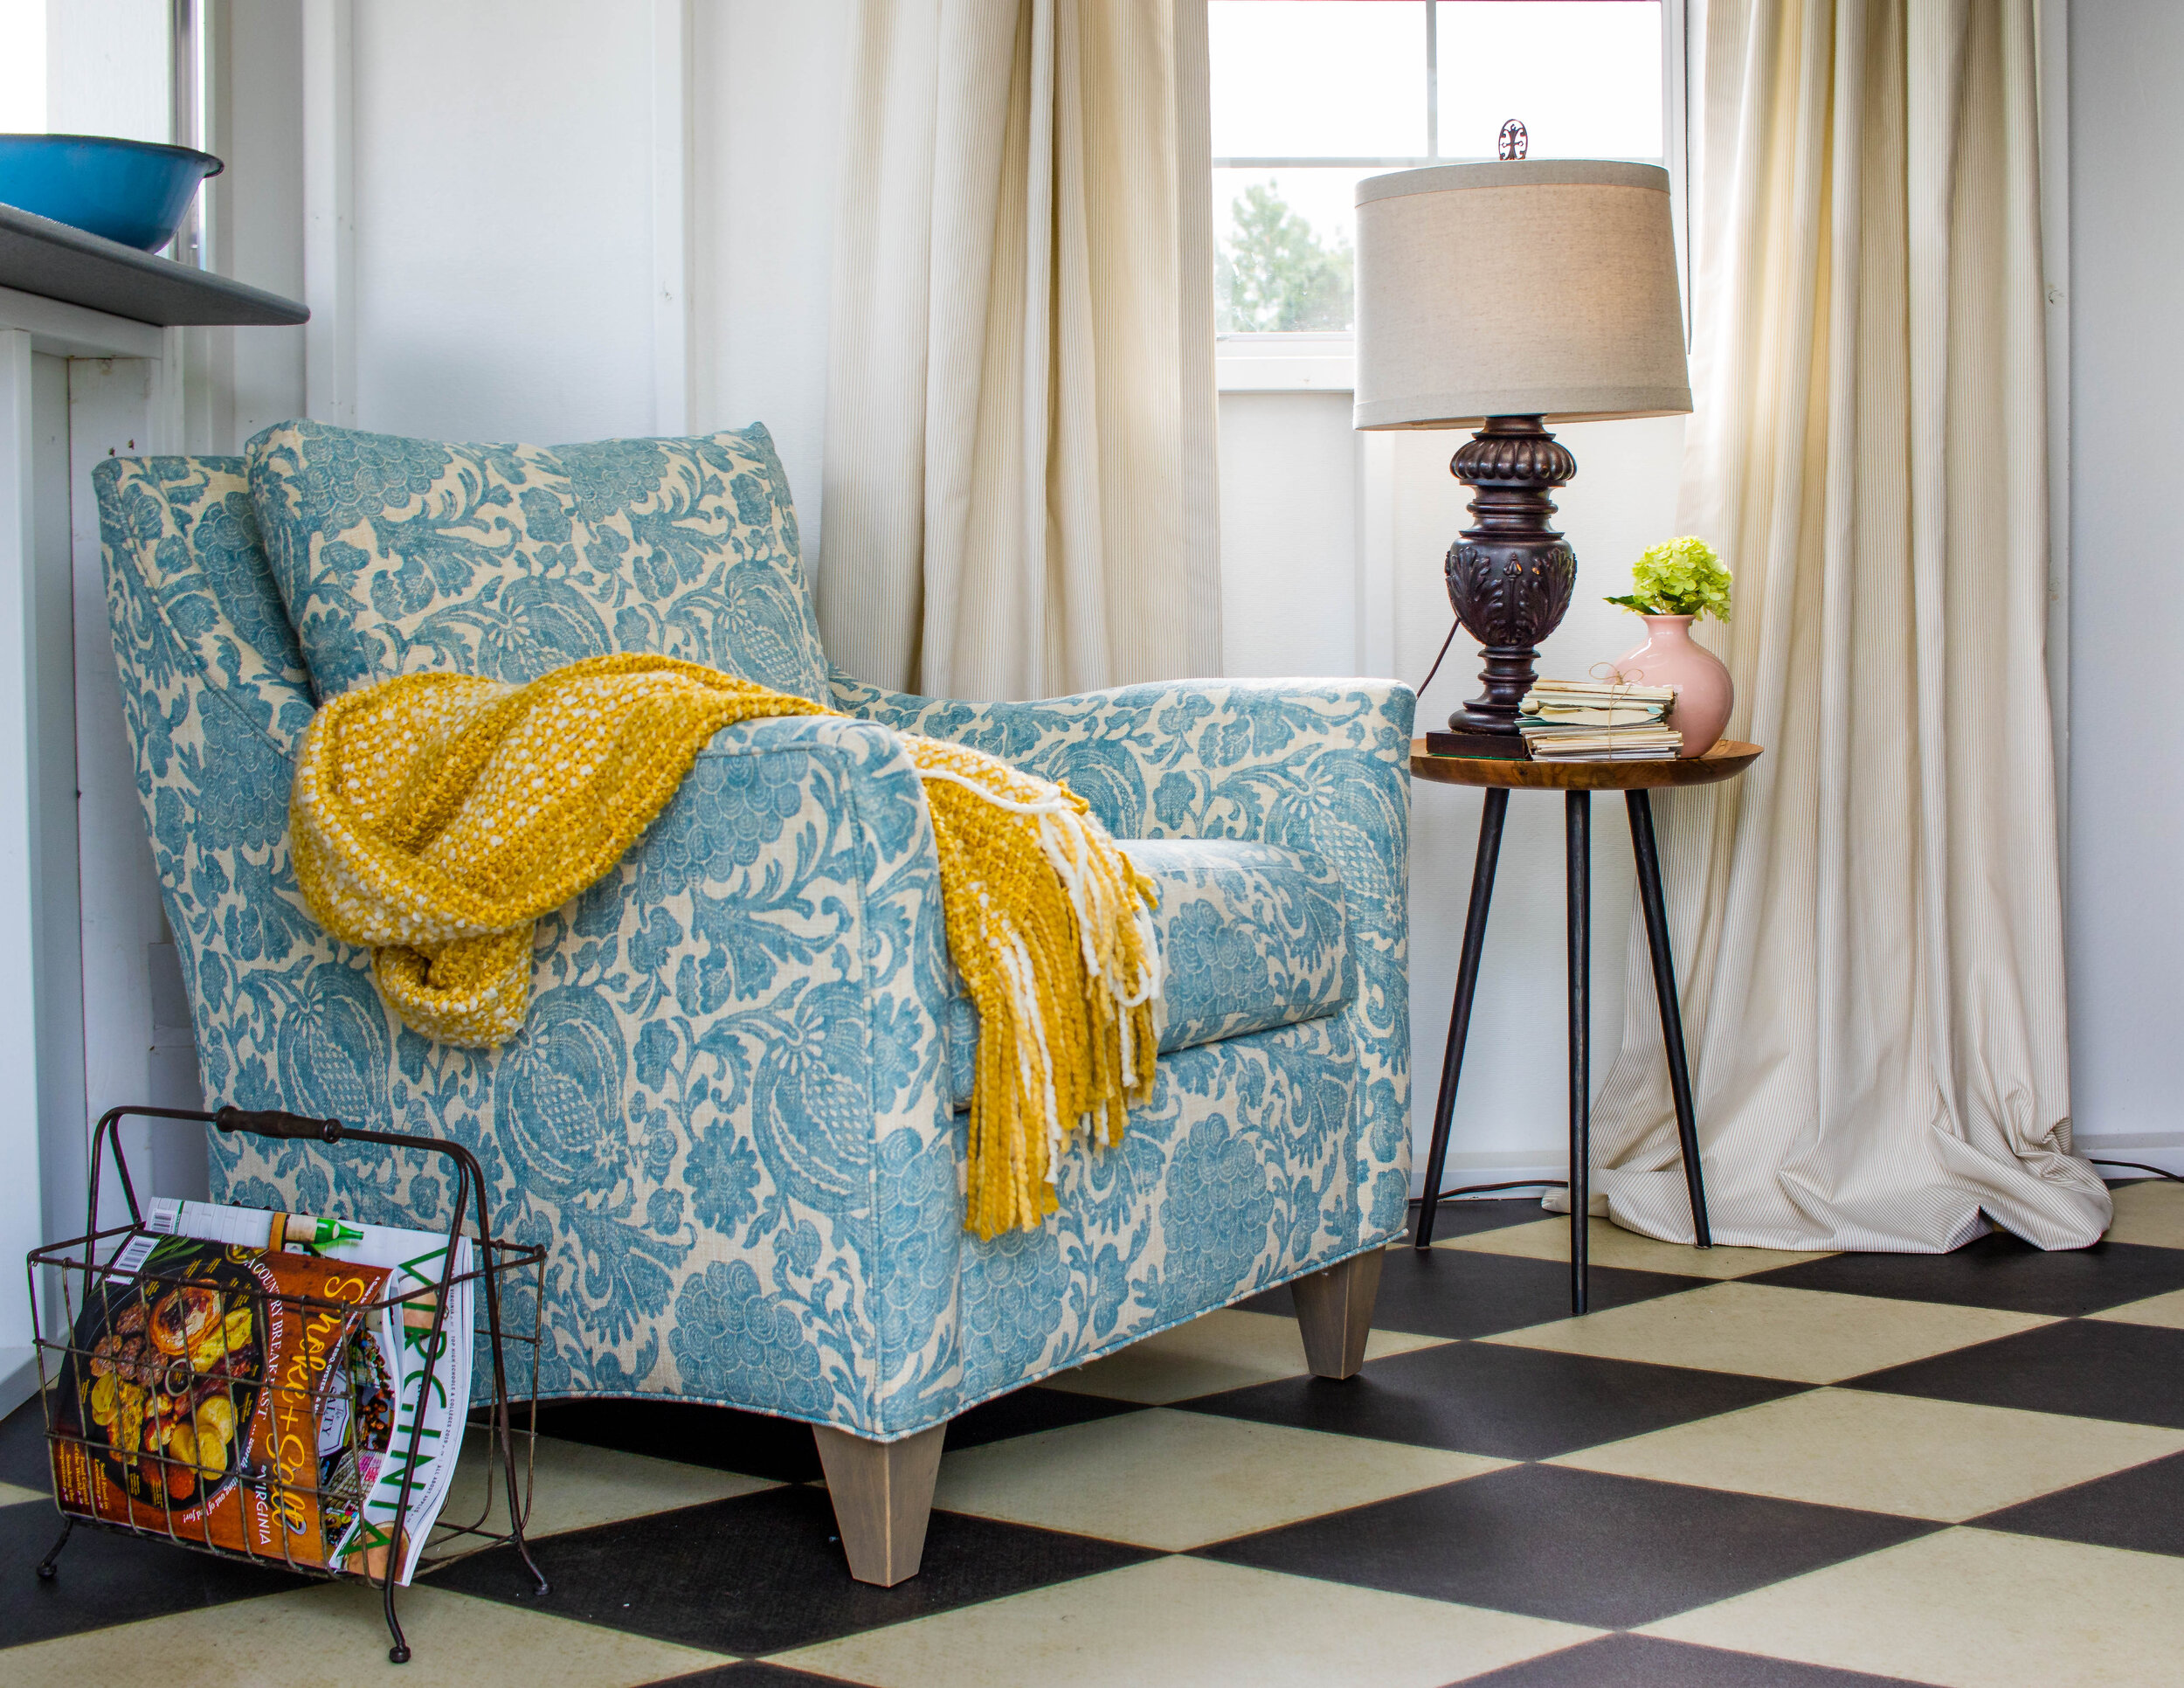 American made quality custom upholstery for the best comfort in our She Shed design